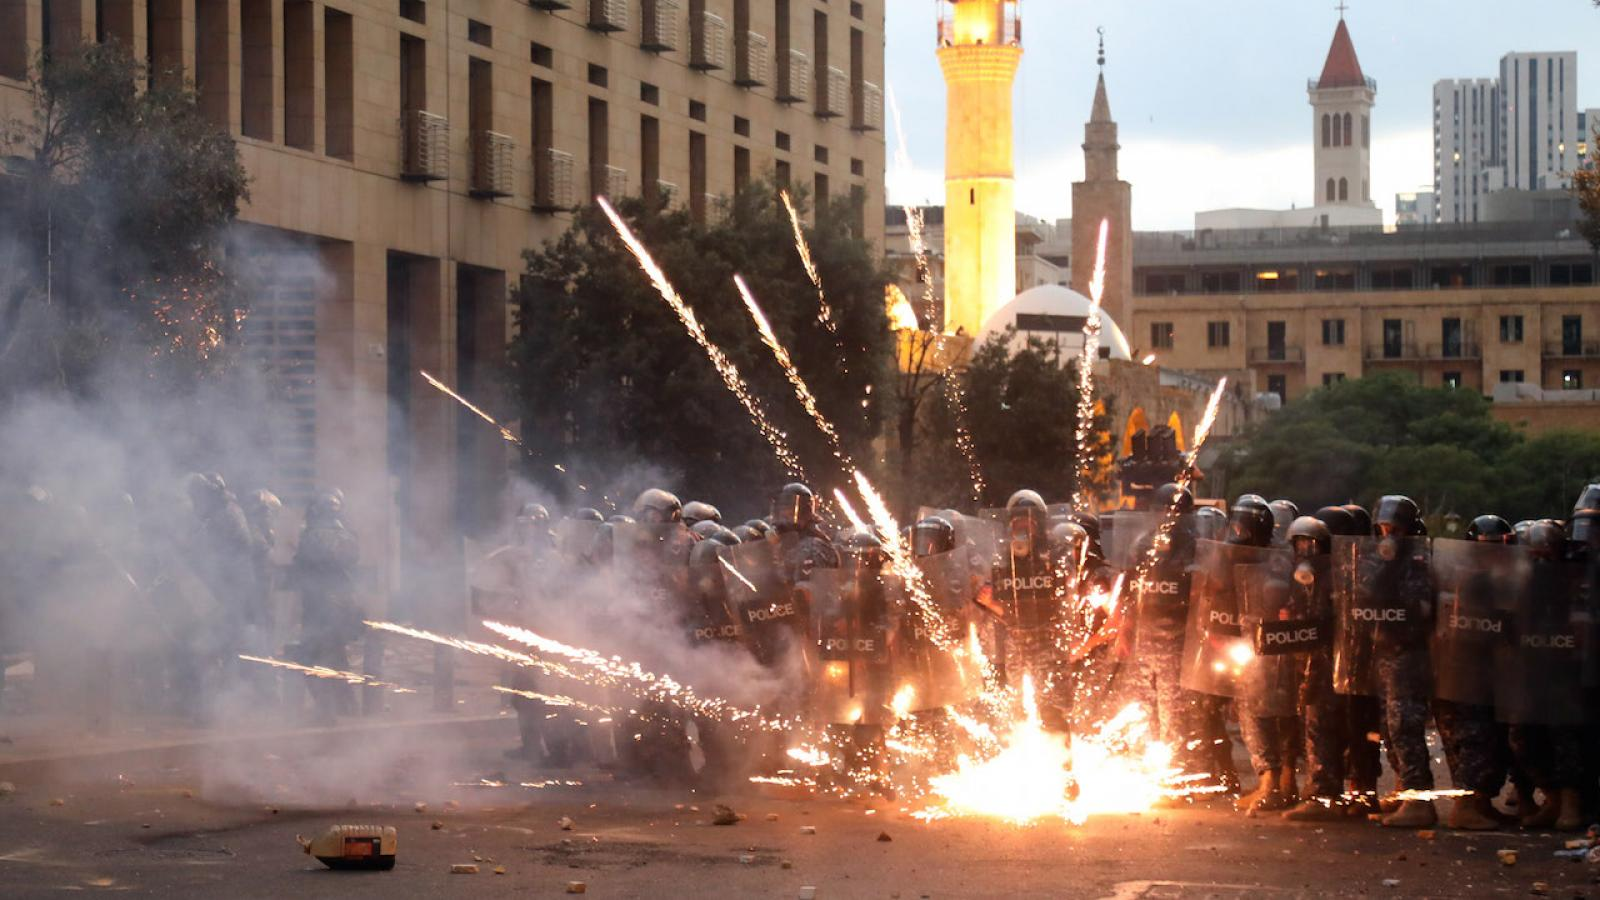 Protestors lob firecrackers at riot police in downtown Beirut.